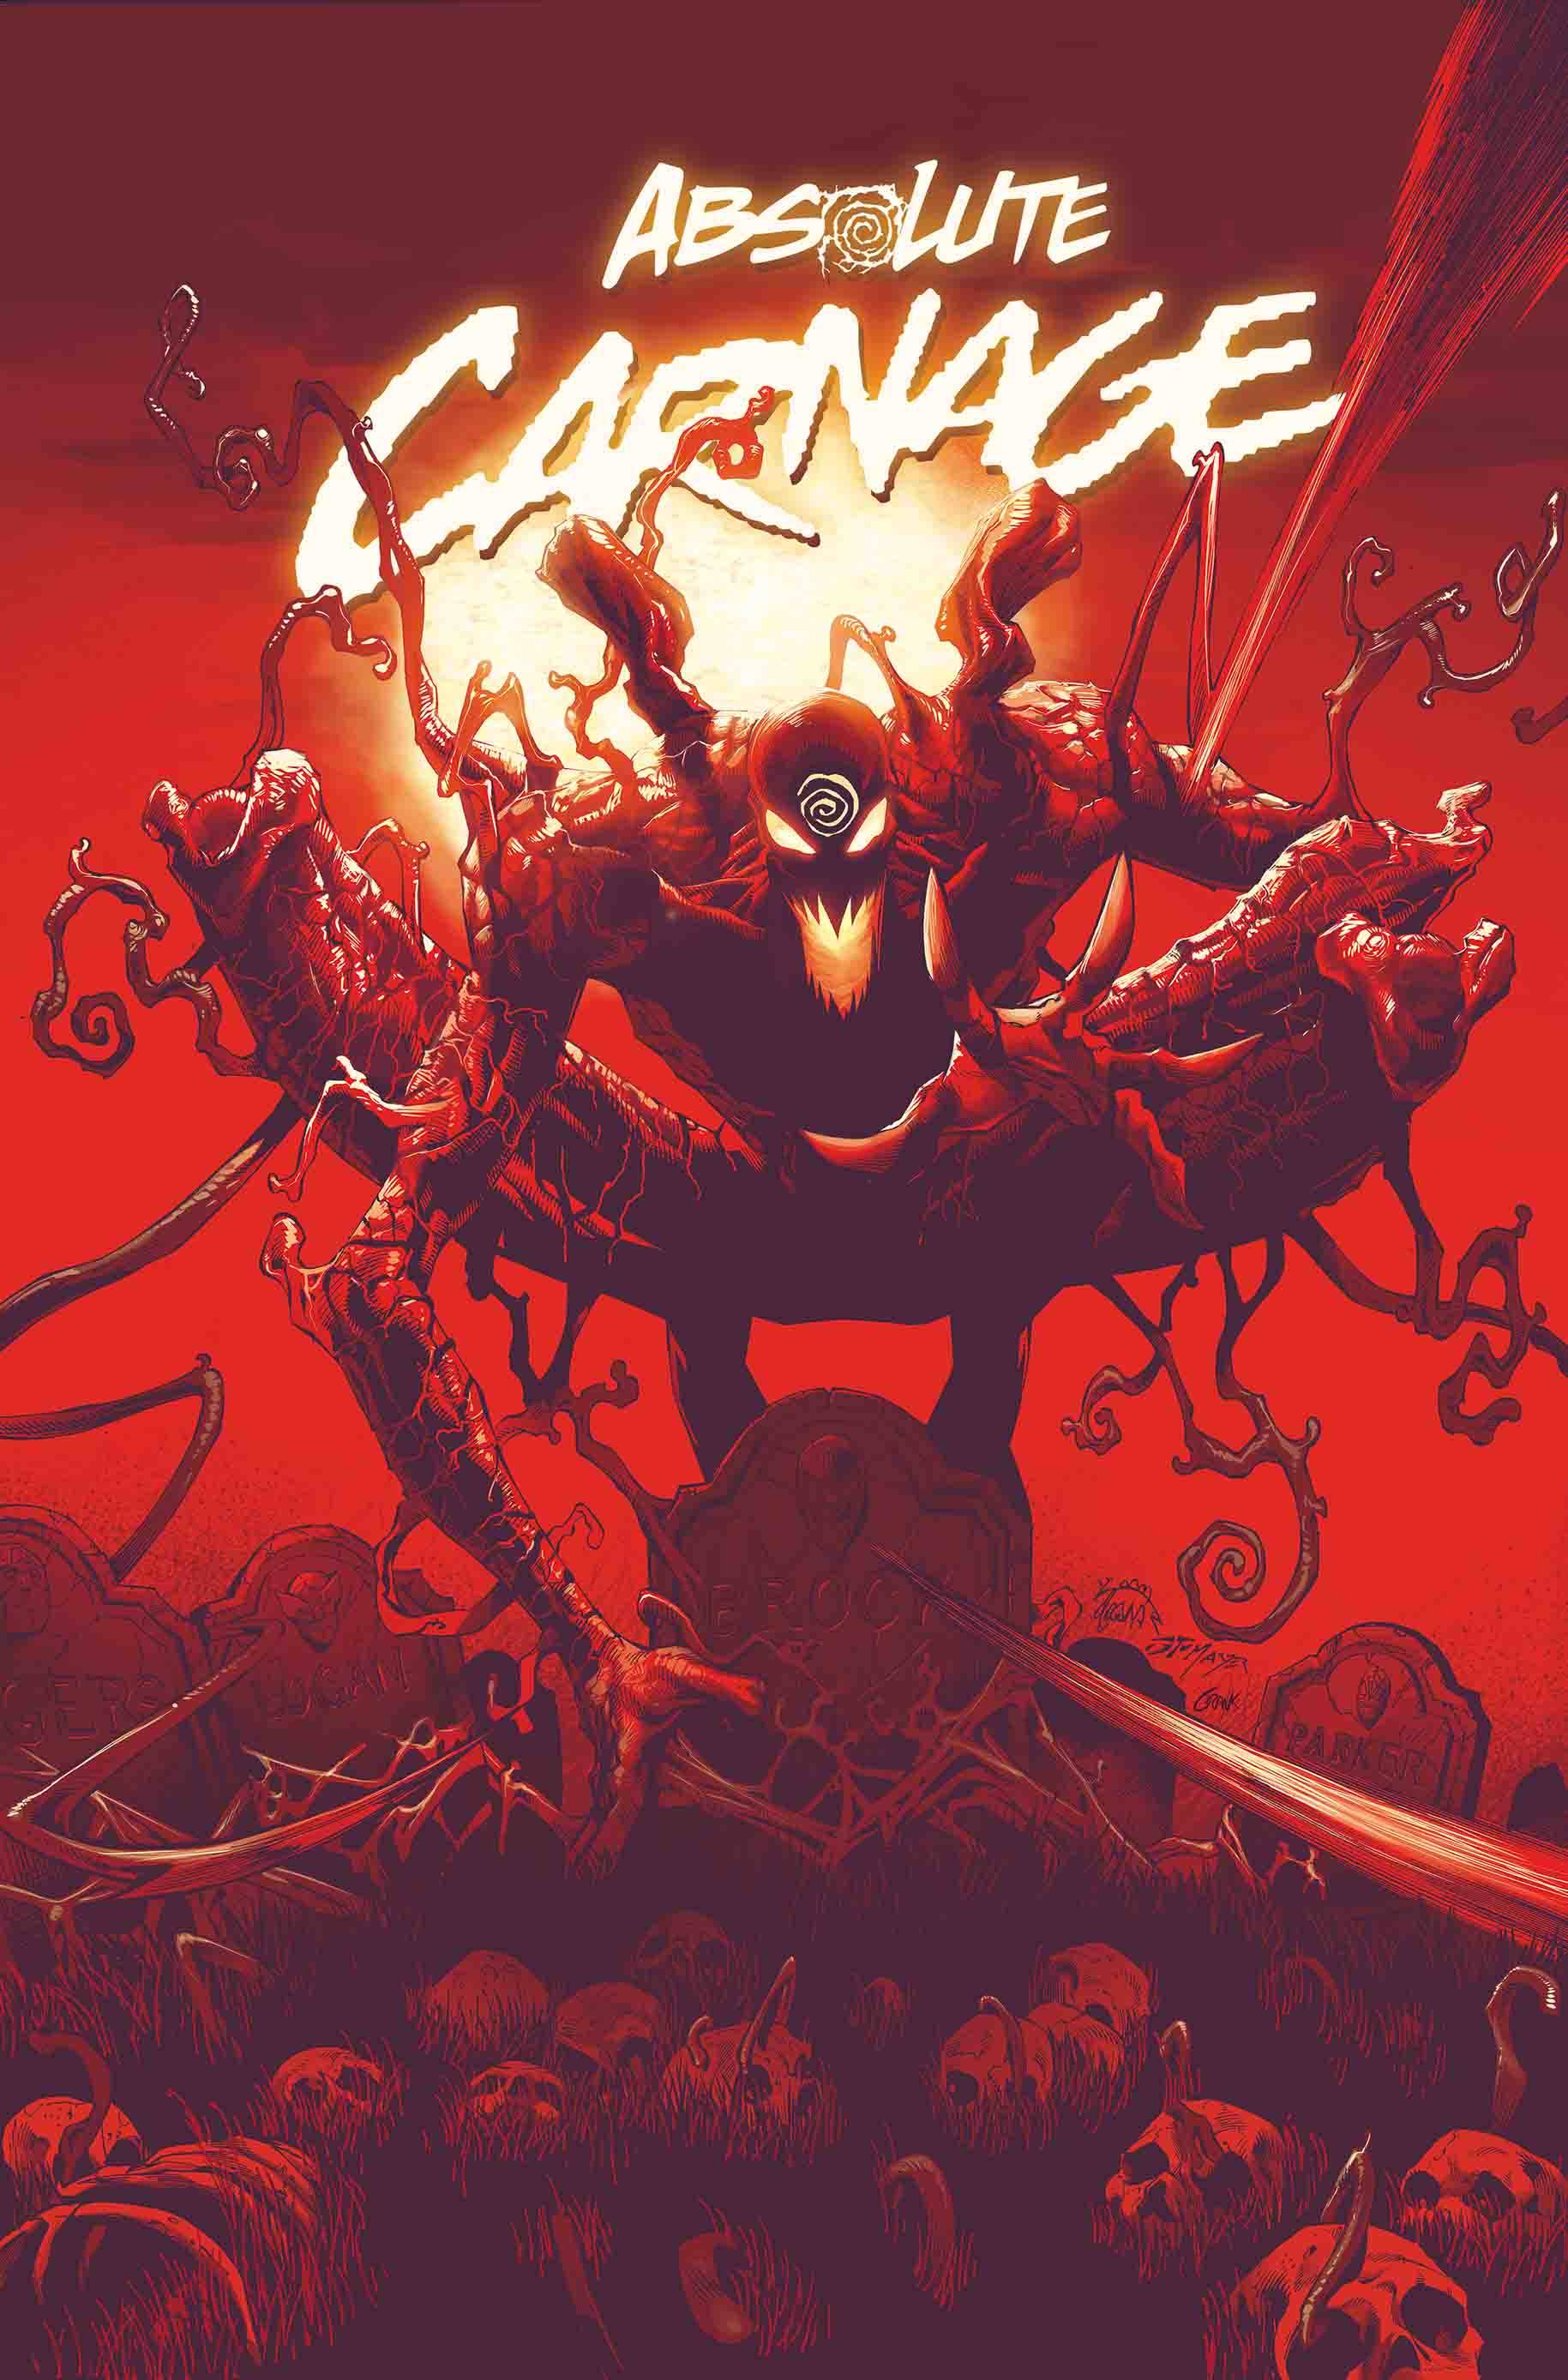 ABSOLUTE CARNAGE BY STEGMAN POSTER.jpg